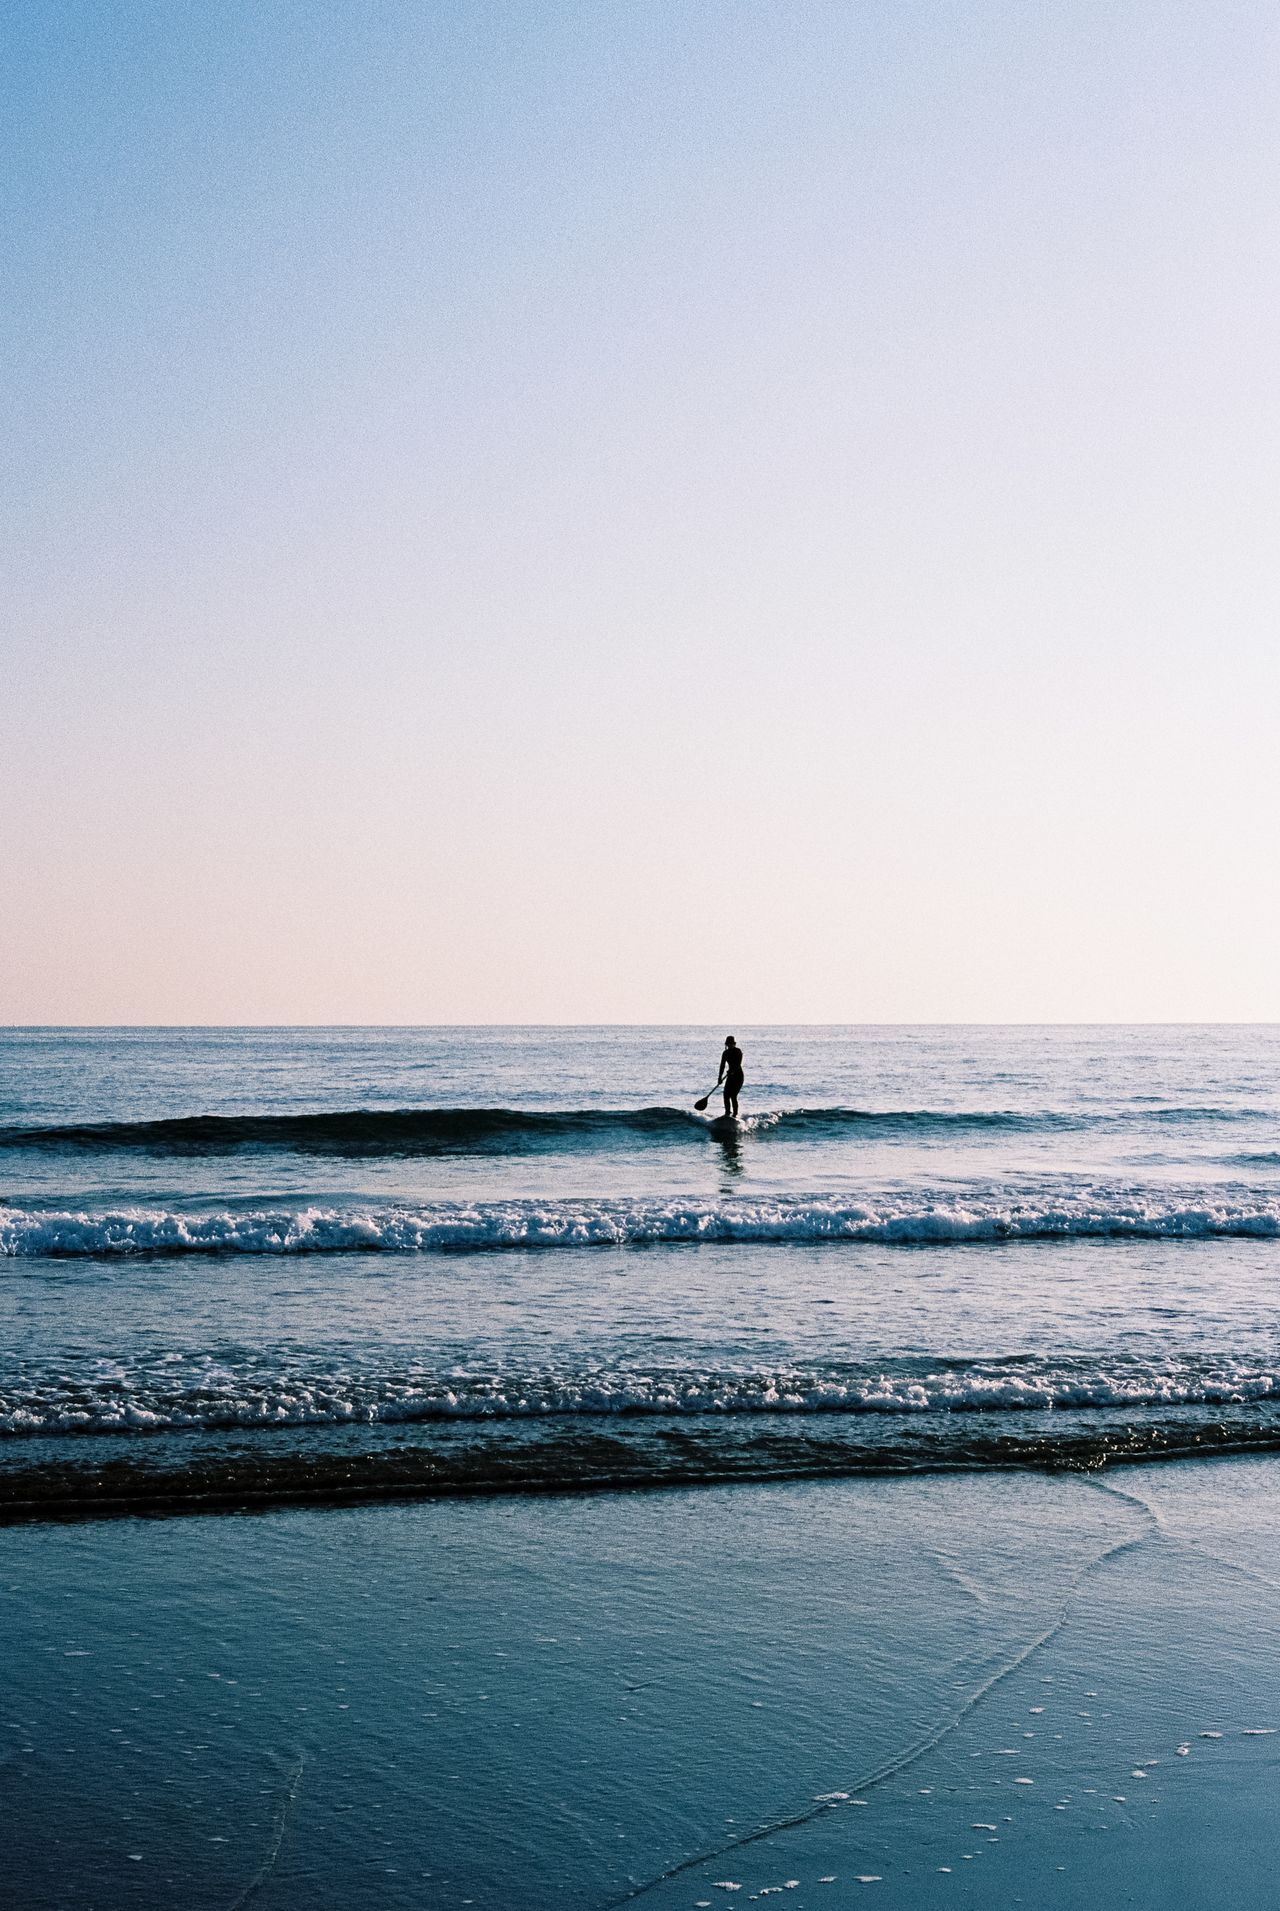 35mm Film Adult Adults Only Analog Analogue Photography Beach Beauty In Nature Clear Sky Day Film Photography Horizon Over Water Japan Men Nature One Man Only One Person Only Men Outdoors People Real People Scenics Sea Sky Surfing Water